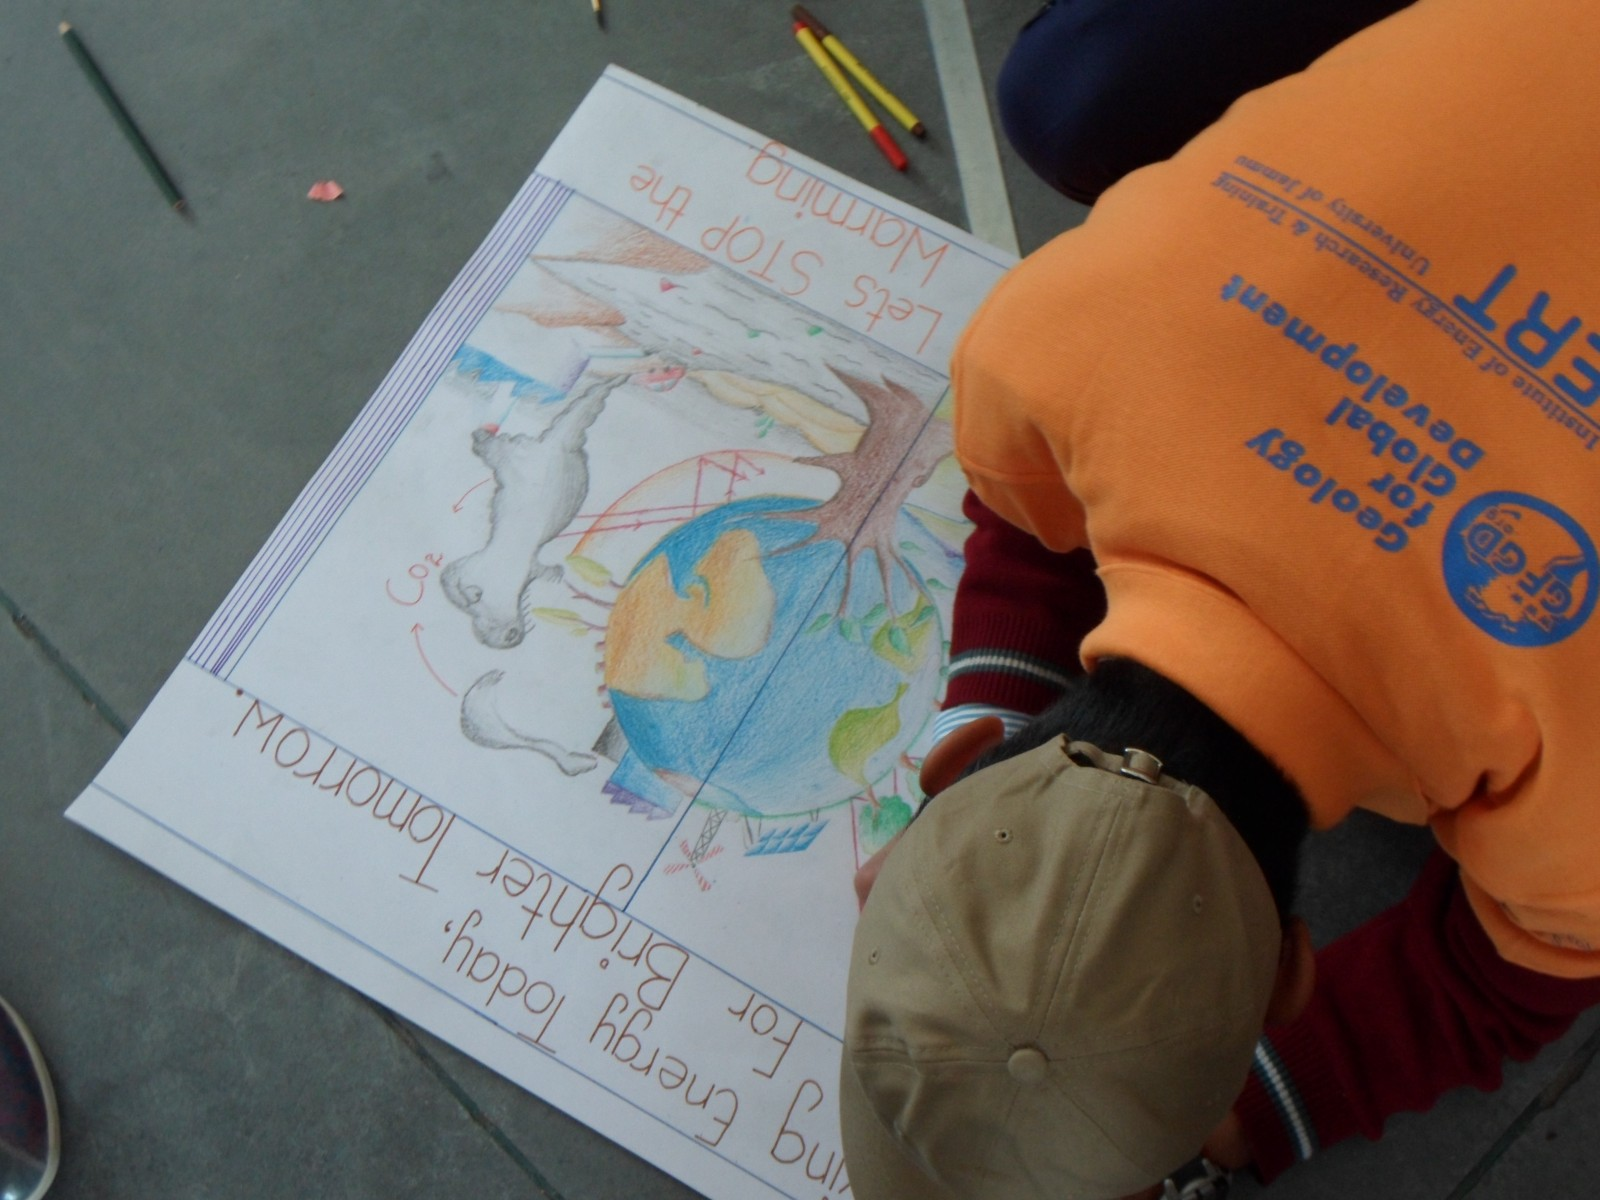 School children in Ladakh (India) drawing on the theme of environmental change.